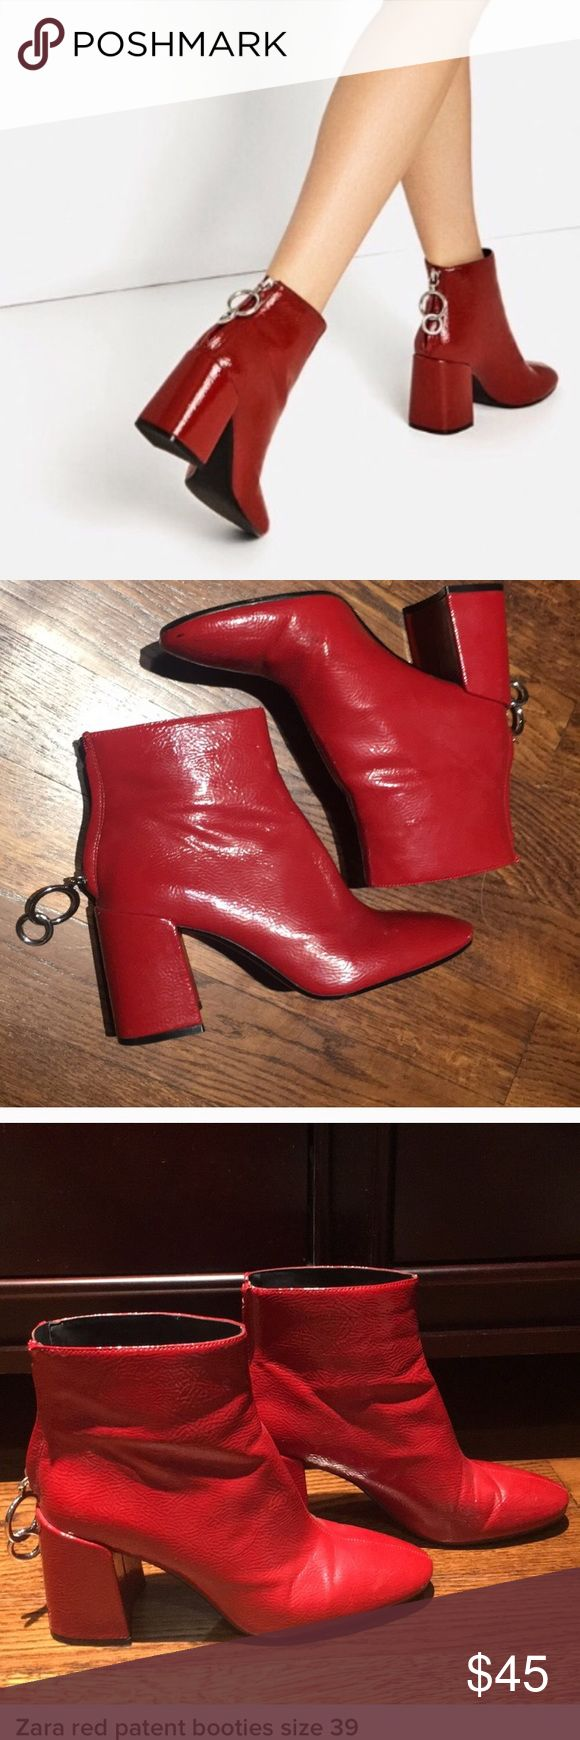 Zara Red patent booties size 39 Red patent leather Zara ankle booties worn twice in good condition. Size 39 UK or 8.5 US Zara Shoes Ankle Boots & Booties